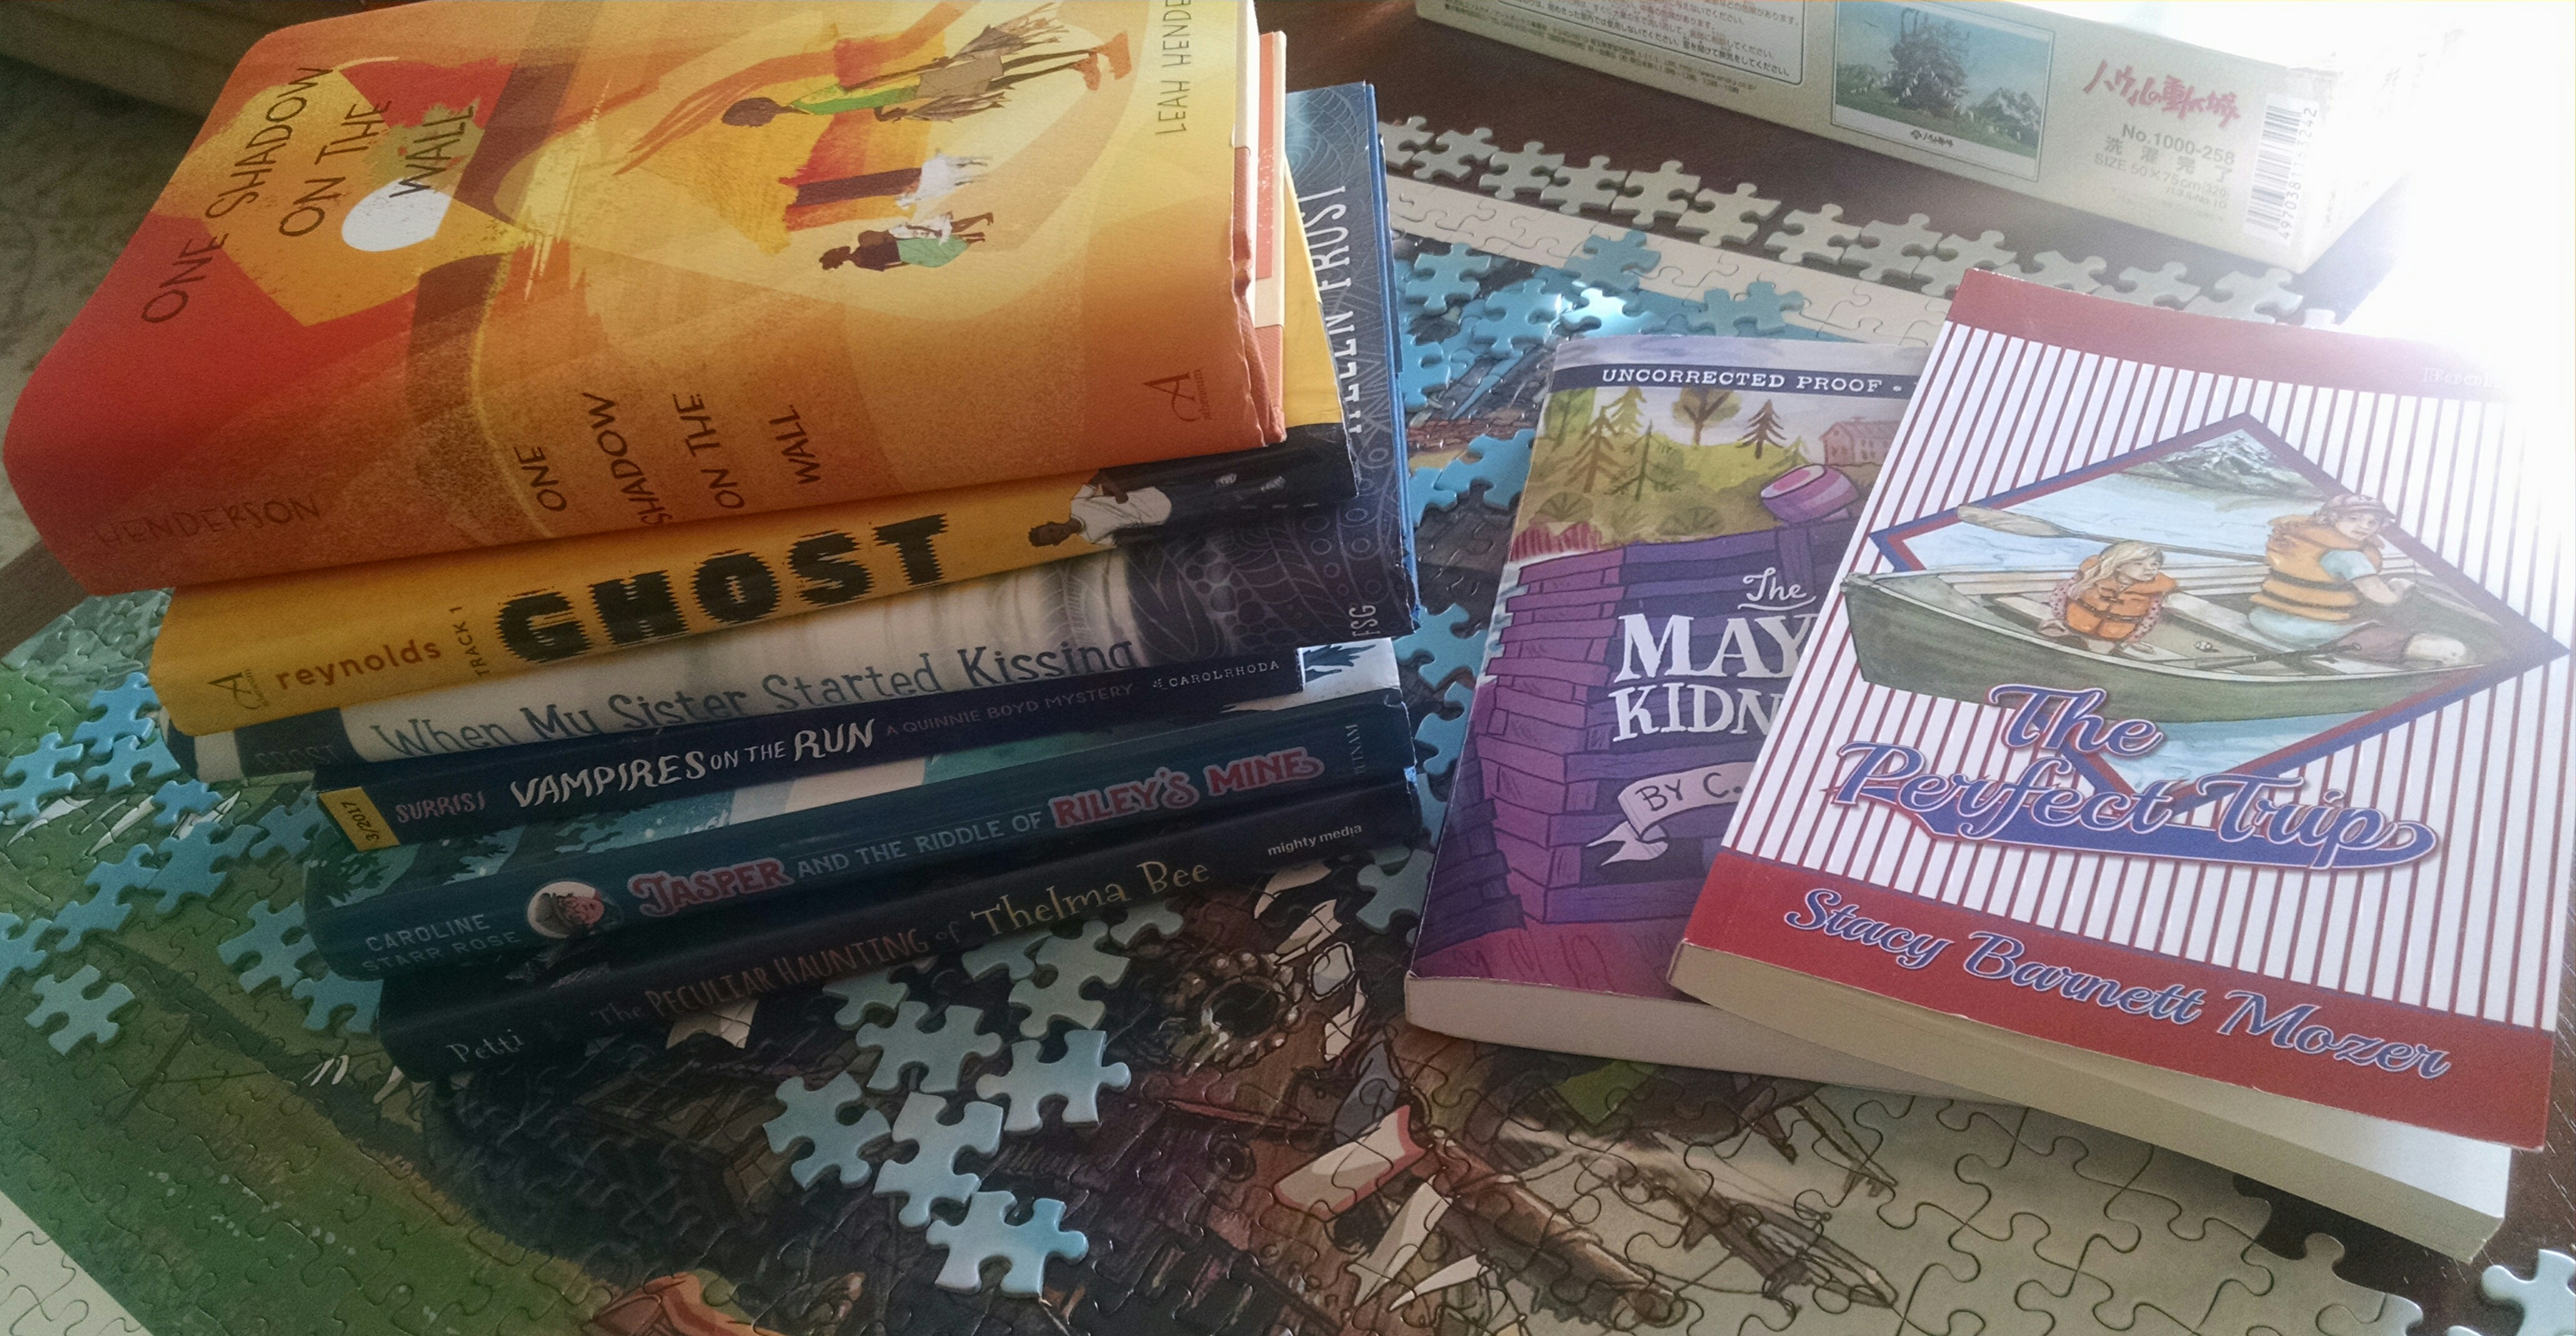 The Art of Summer Reads and Author and Poet's Laura Shovan's TBR